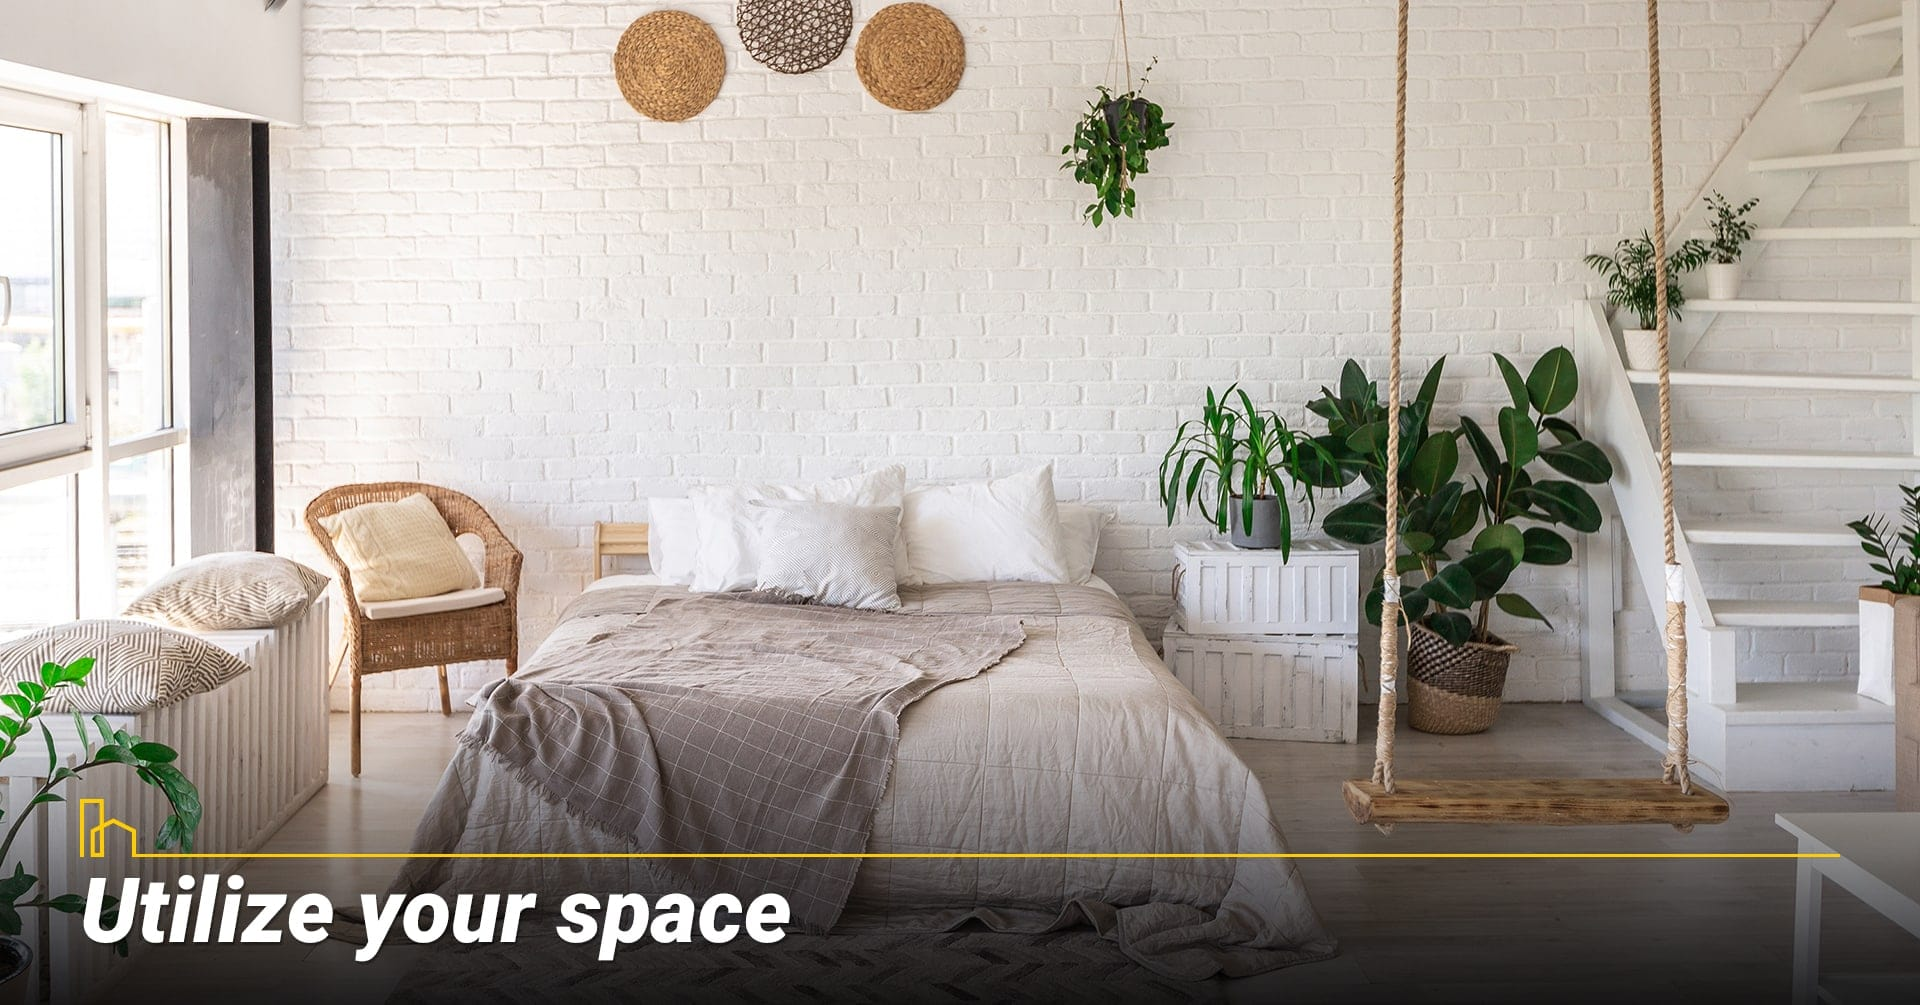 Utilize your space, make good use of your space